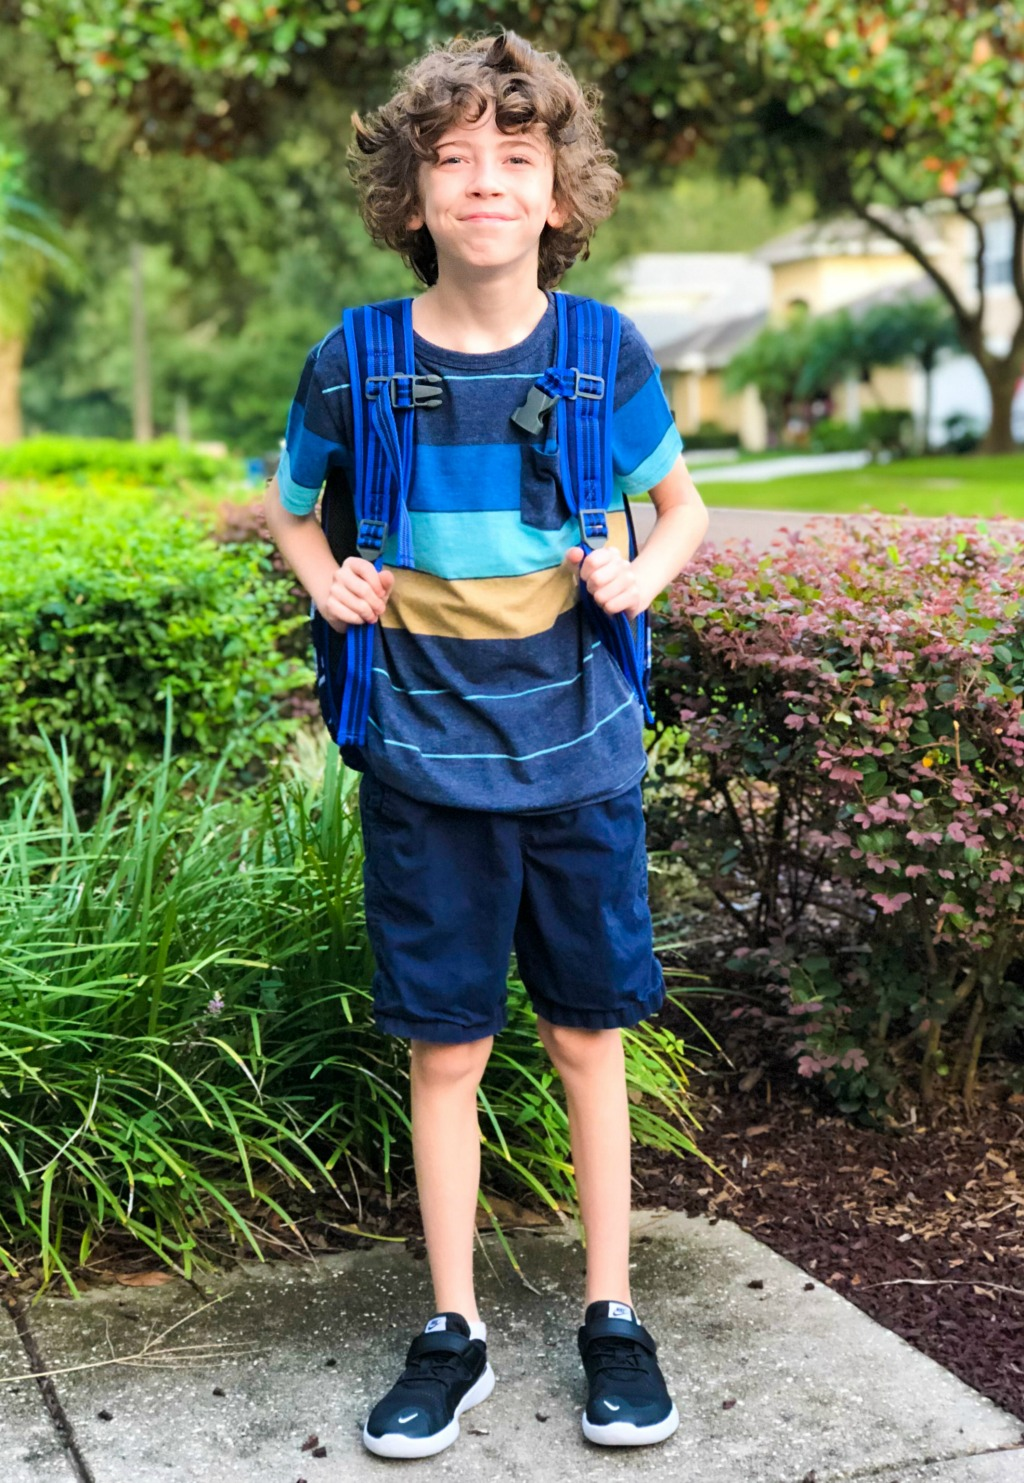 11 year old boy holding his blue backpack in front yard